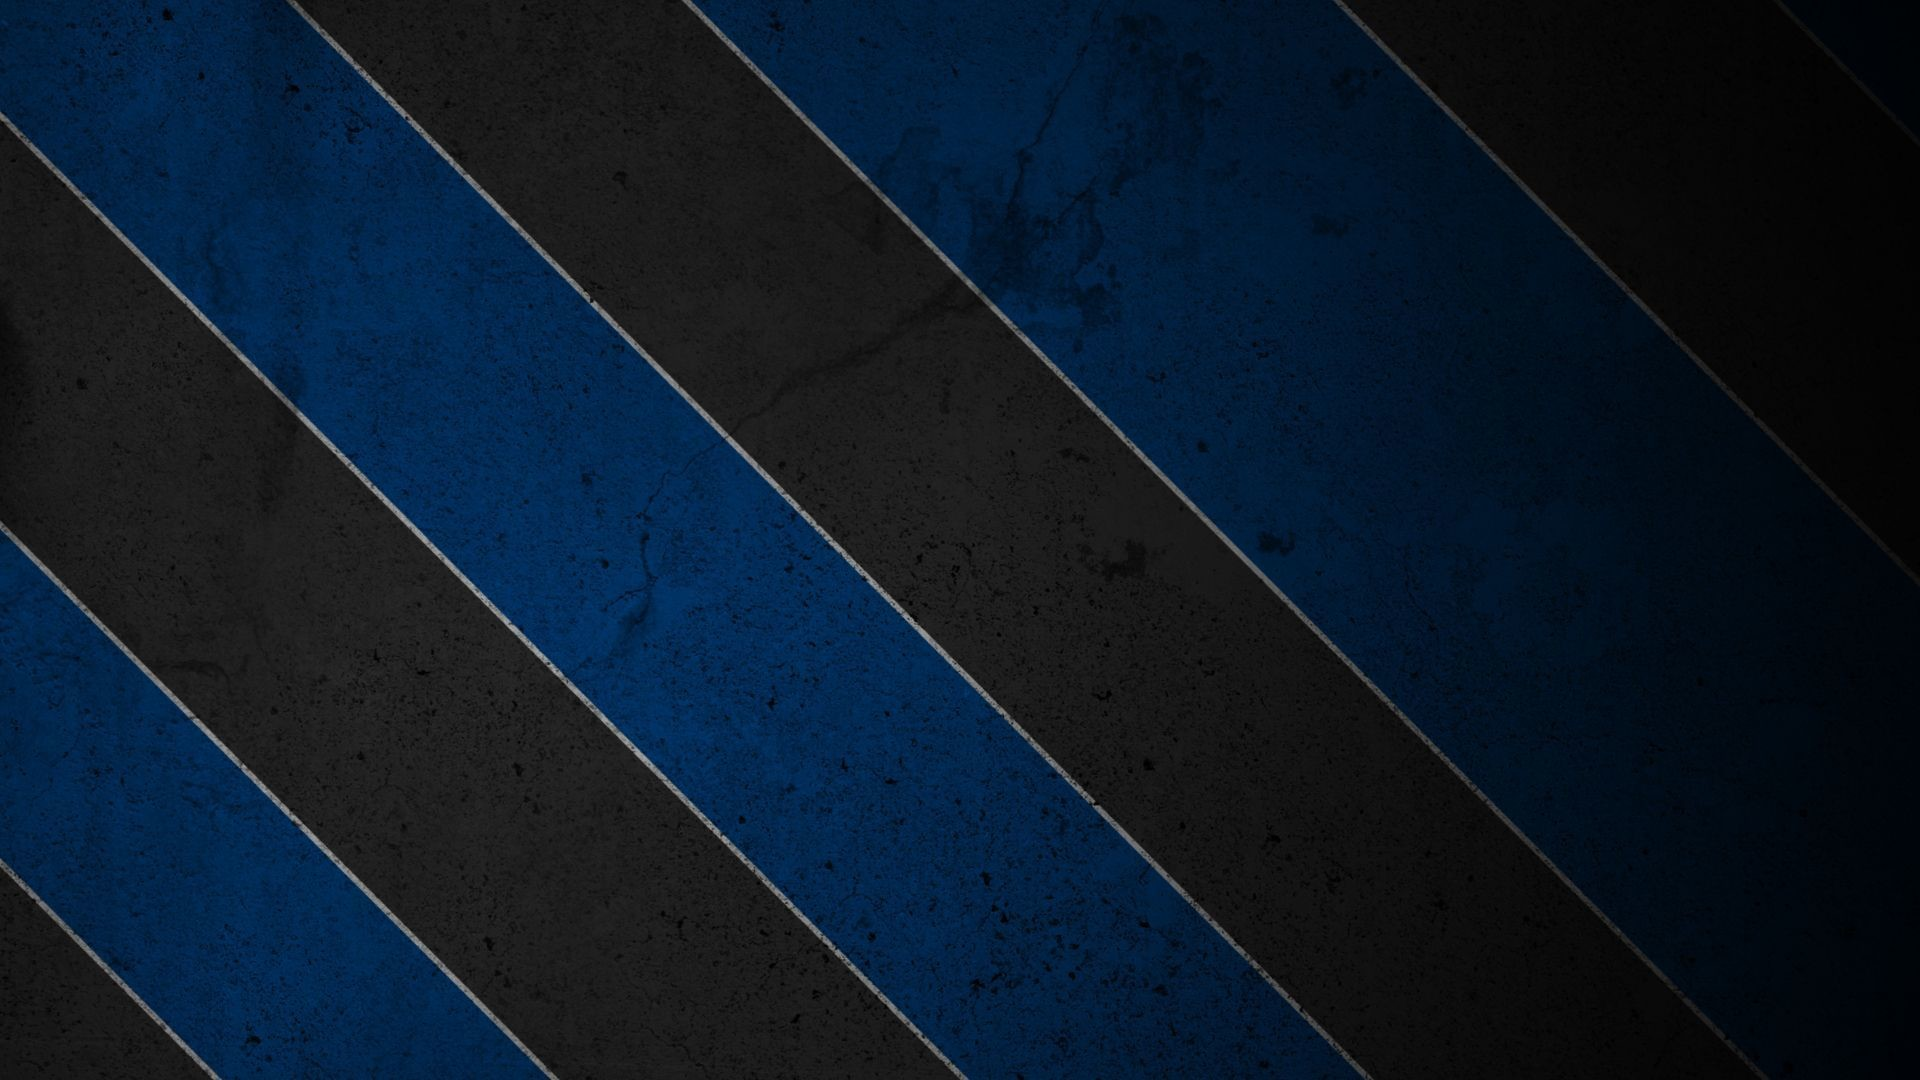 Res: 1920x1080, Simple Not Glossy But Elegant Ideas Shapes Black And Blue Wallpaper Line  White Small